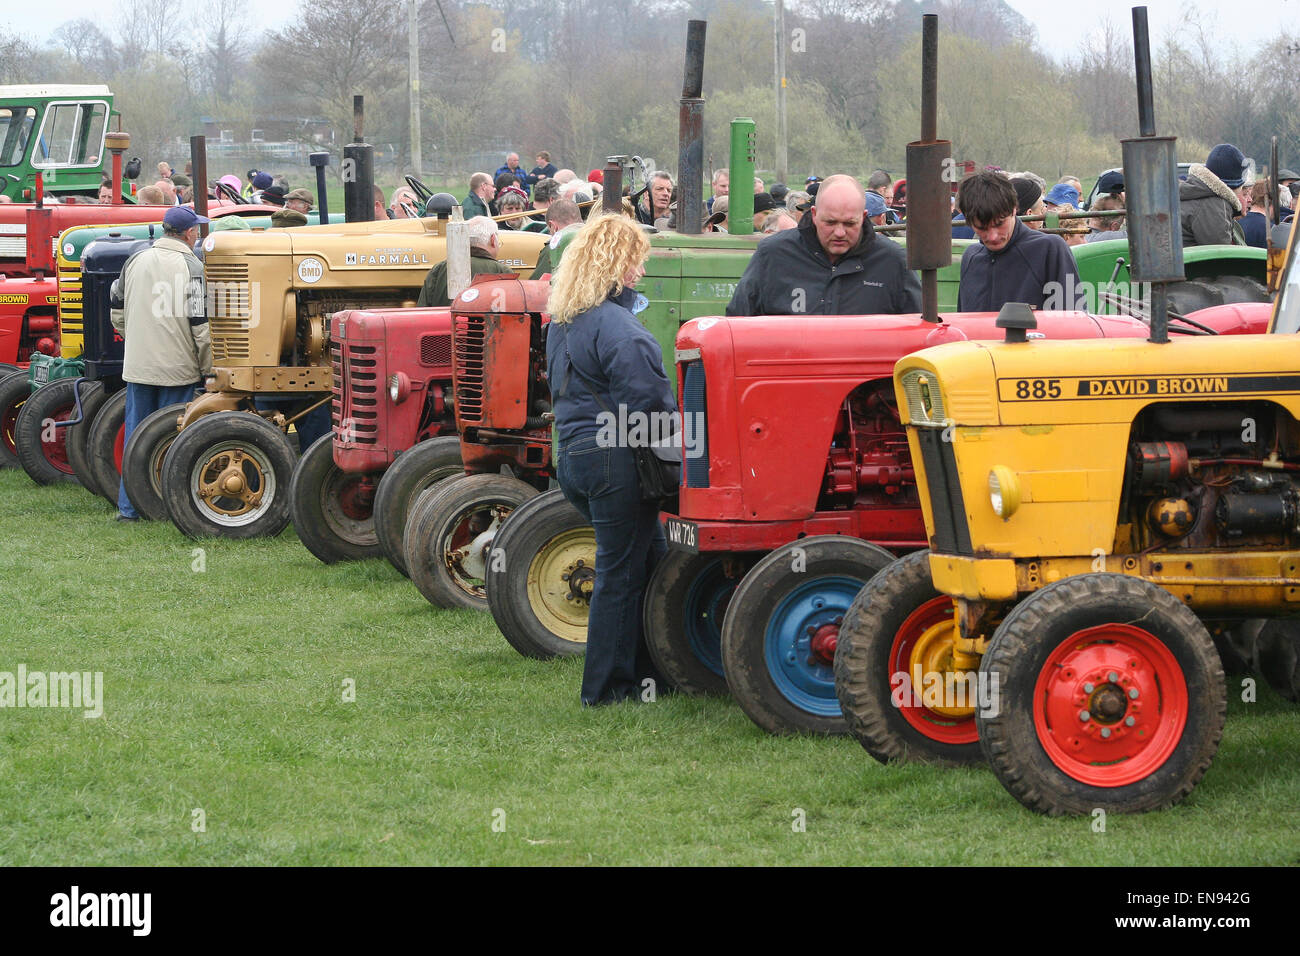 Prospective buyers examine a line of old farm tractors for sale at a ...